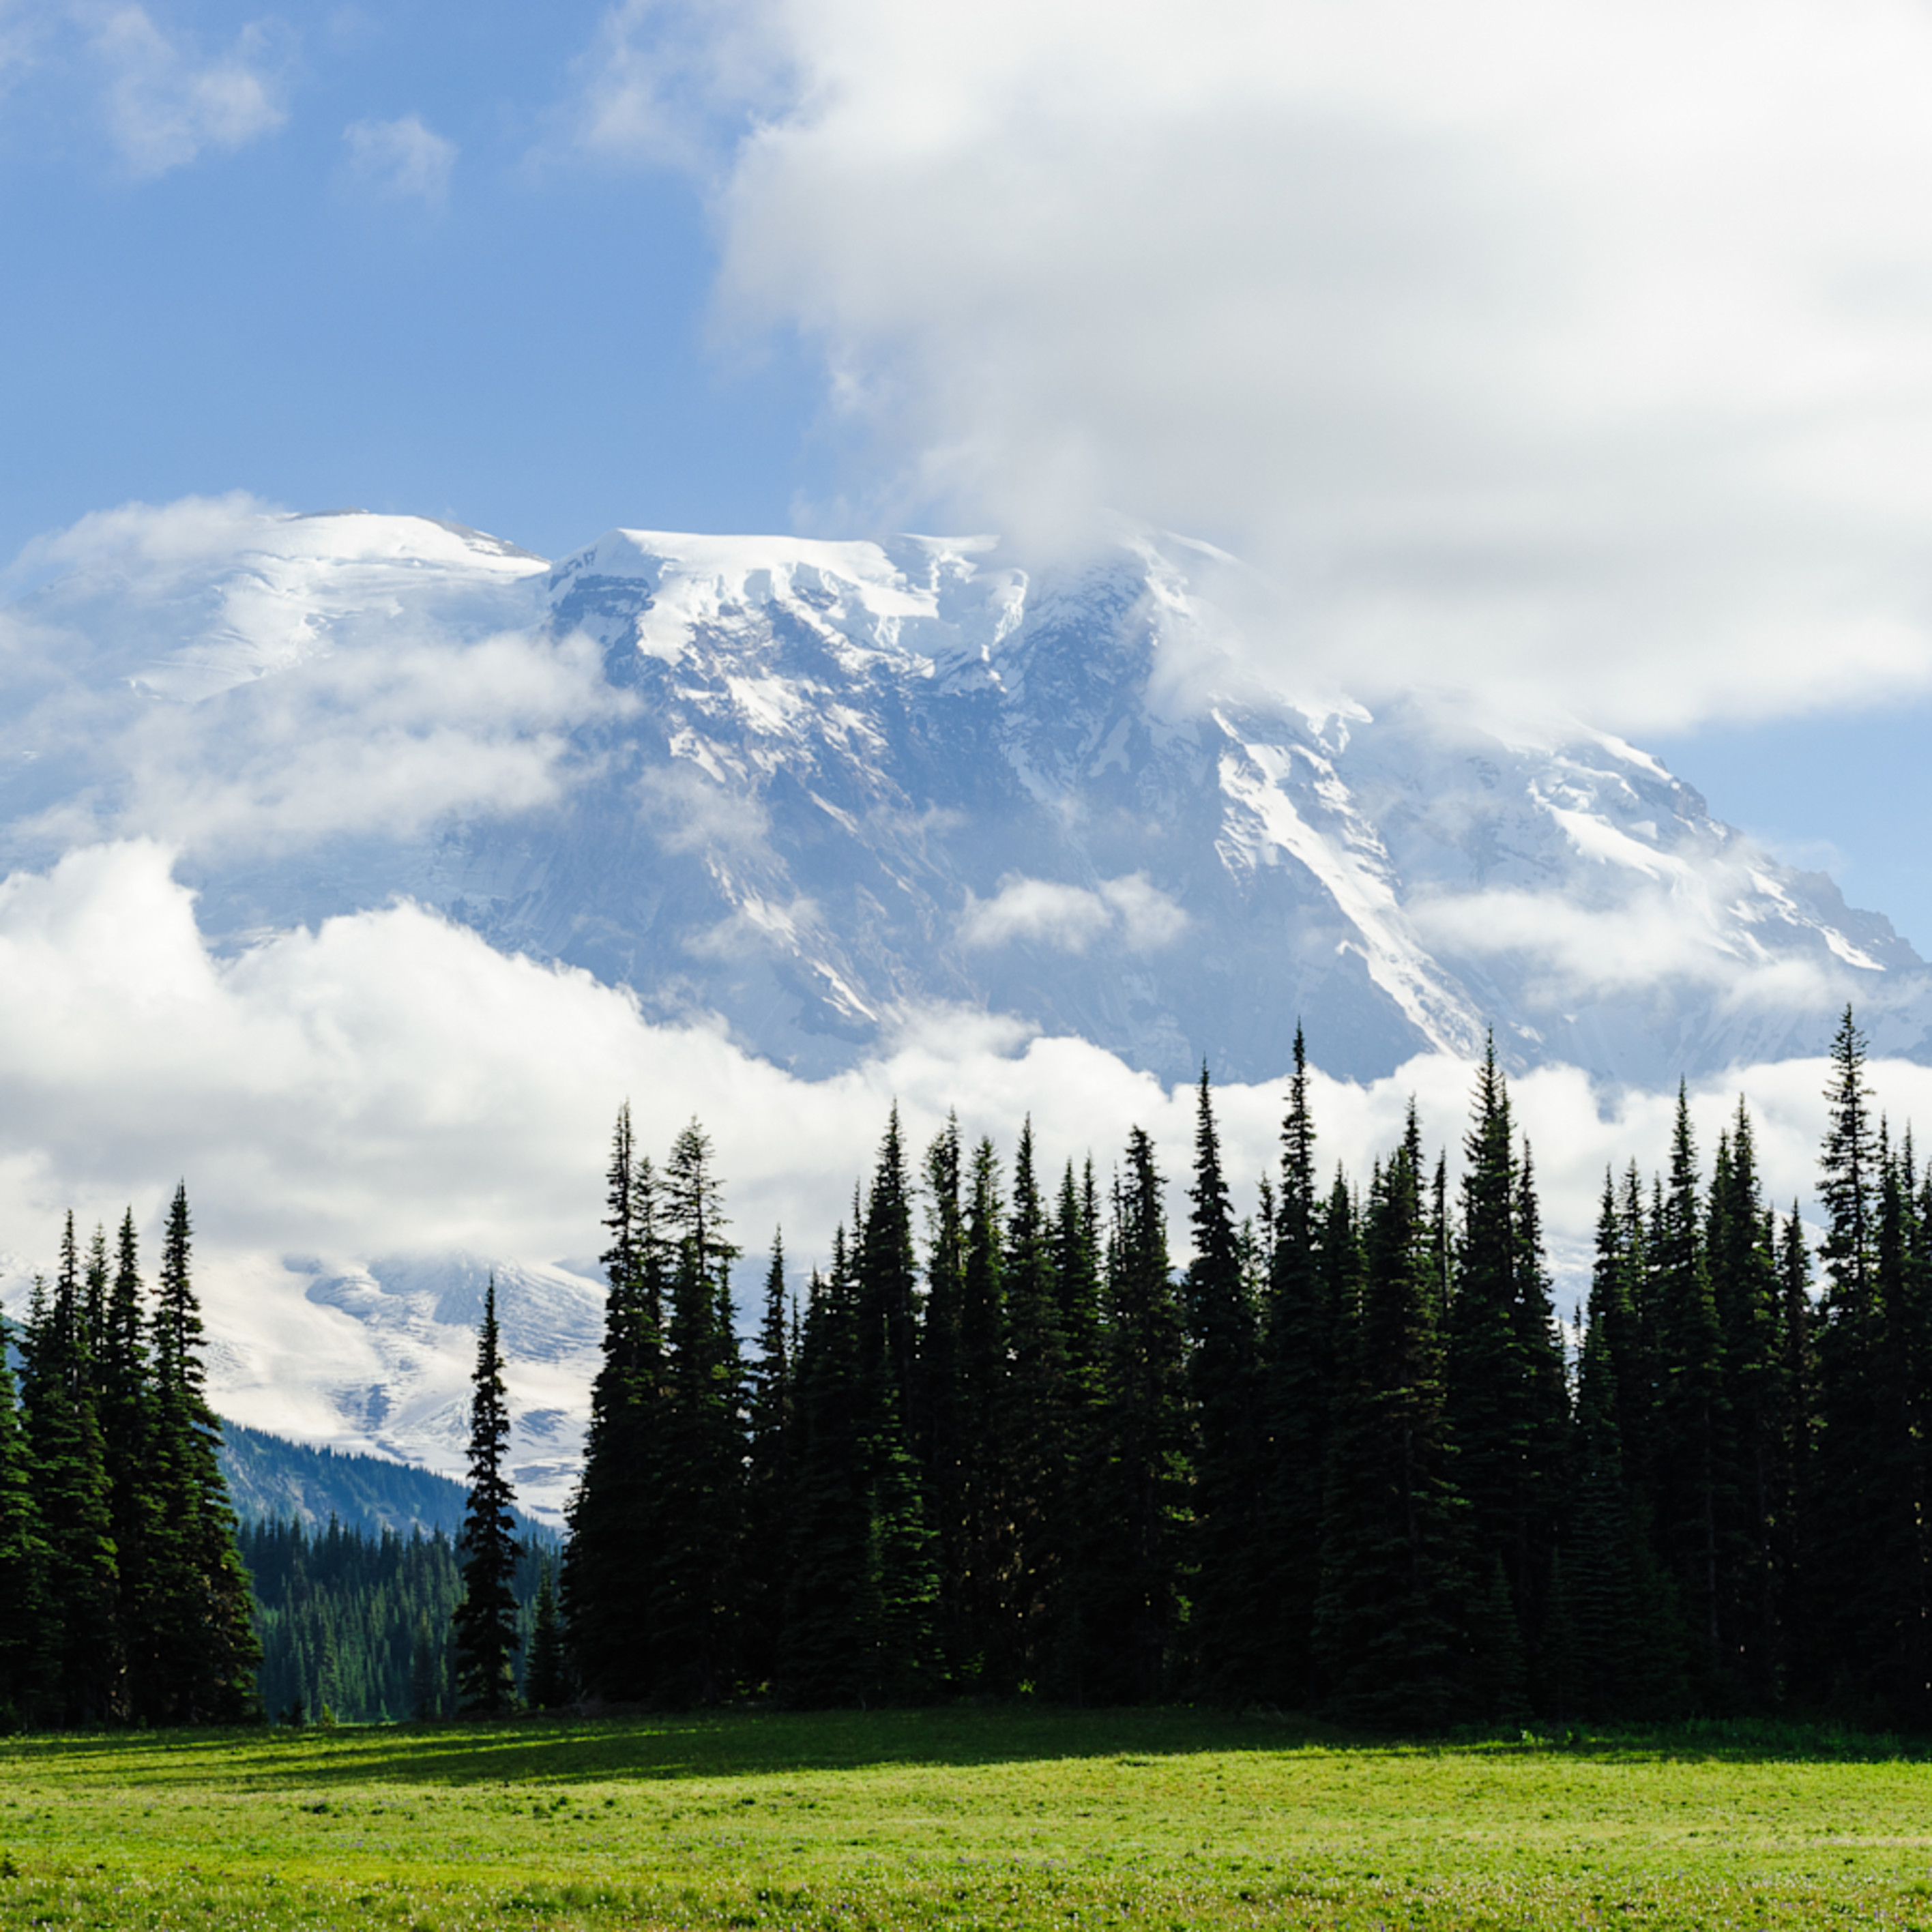 Mount rainier shrouded by clouds grand park washington 2016 hlfspe